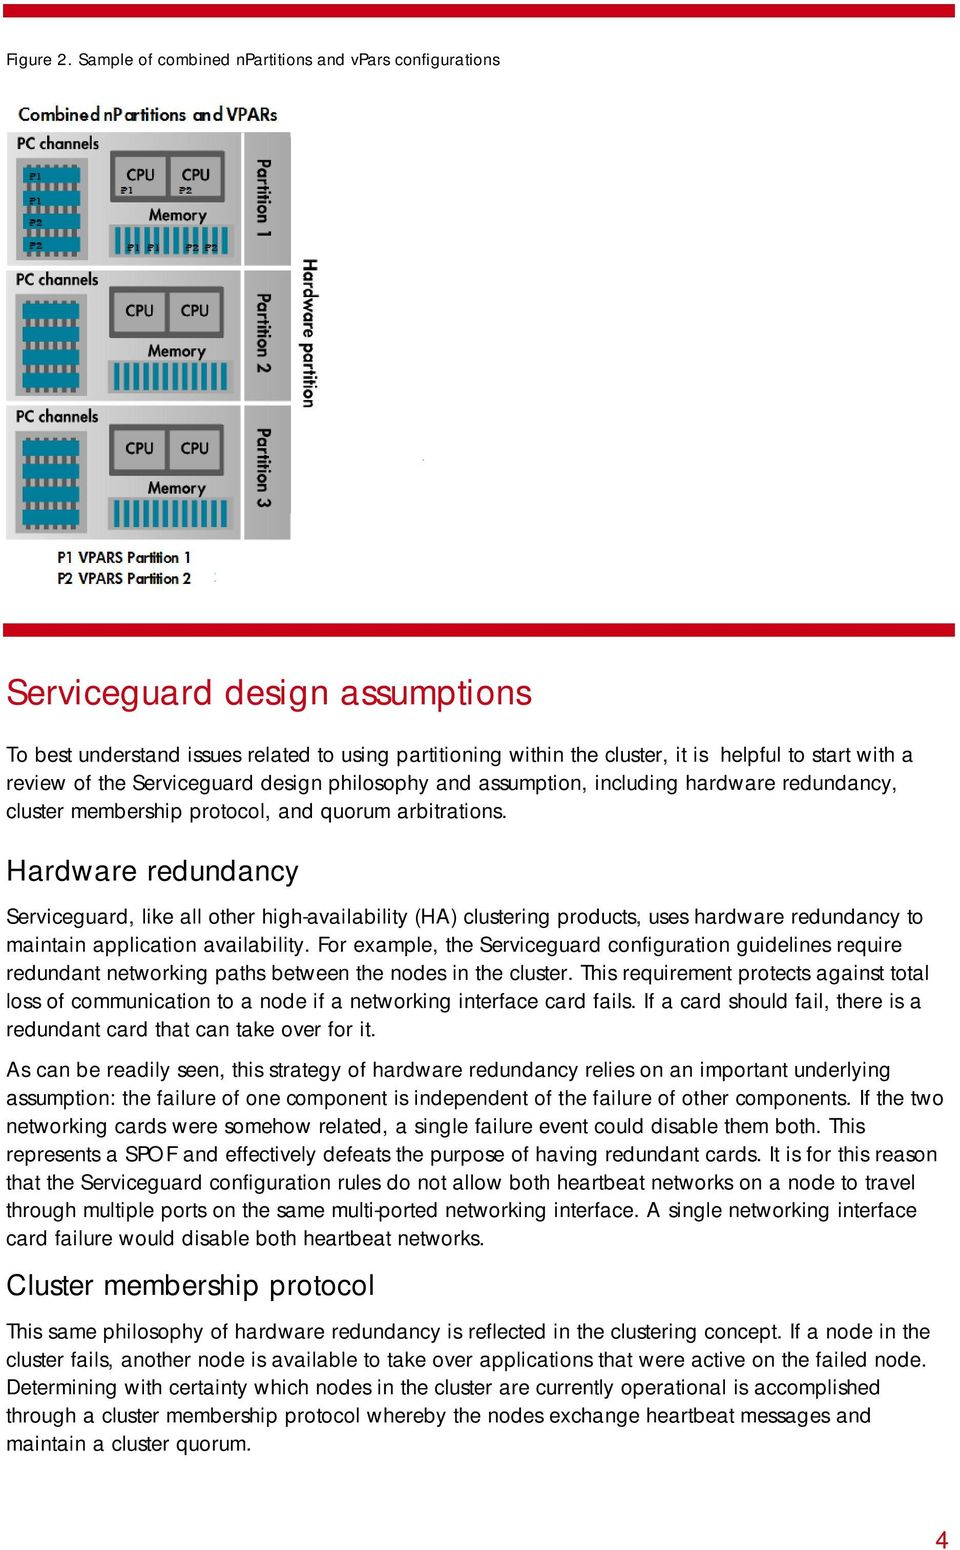 review of the Serviceguard design philosophy and assumption, including hardware redundancy, cluster membership protocol, and quorum arbitrations.